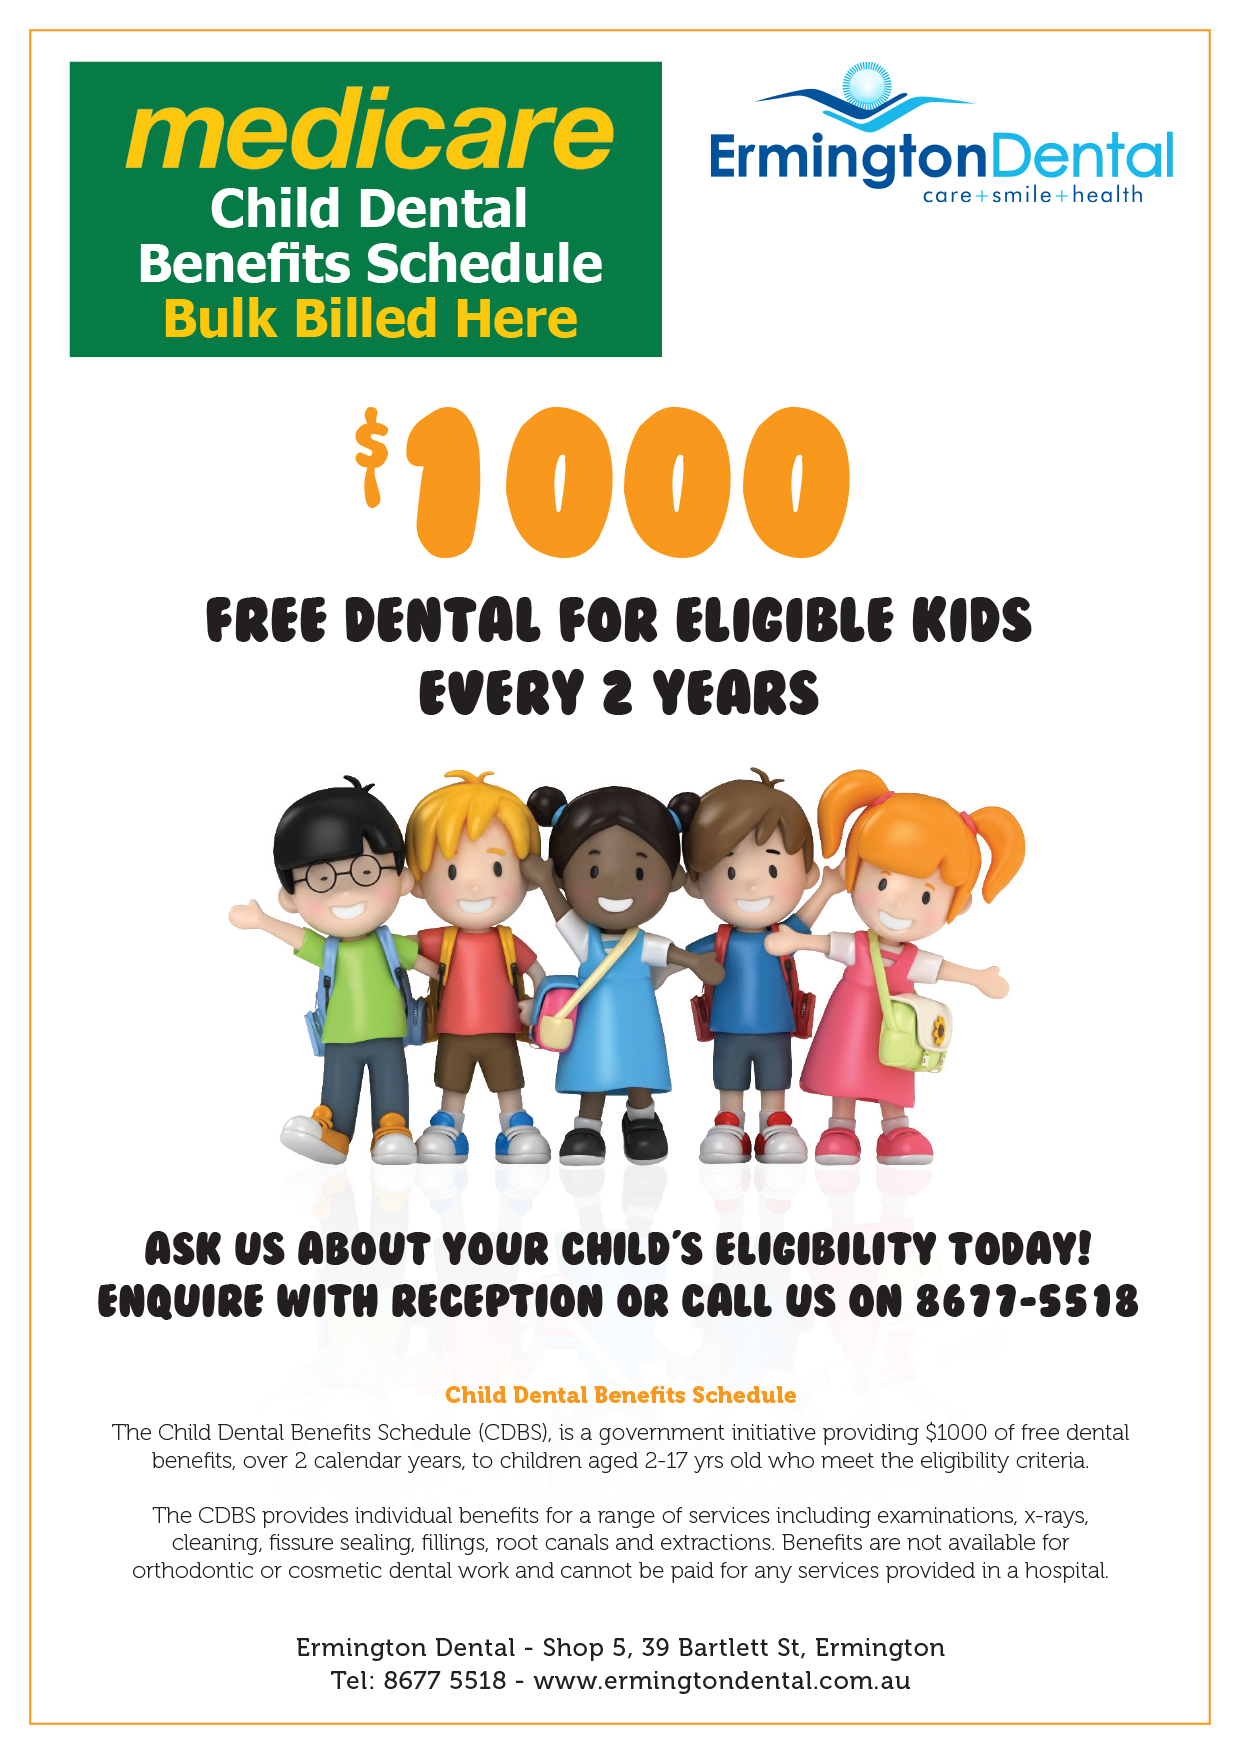 $1000 Free Dental for eligible kids every 2 years